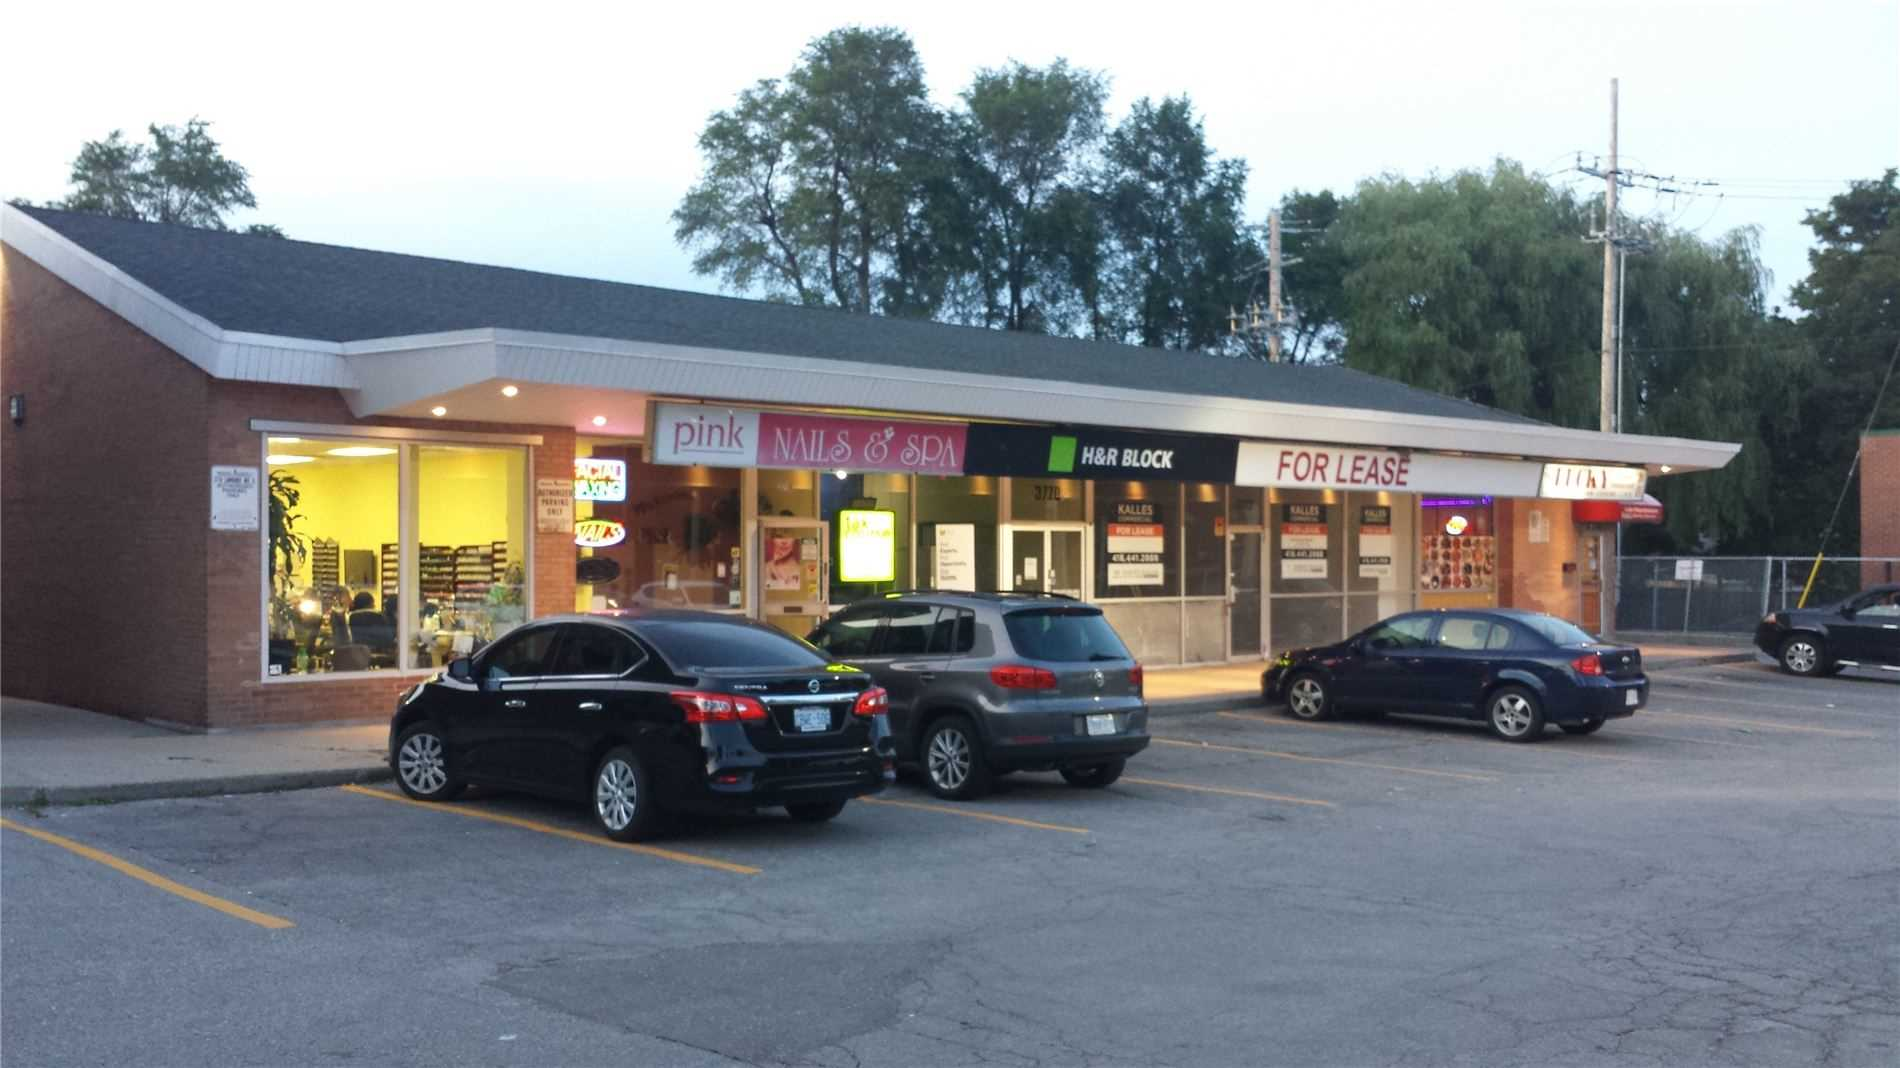 Excellent High Traffic Location Near Lawrence And Markham Rd. Next To Major Retailer Outlet. Ideal For Medical/Dental, Hair Salon Or Spa, Retail, Cafe, Hospitality. Plenty Of Free Parking For 20 Or More Cars. High Visibility Signage. 1 Washroom